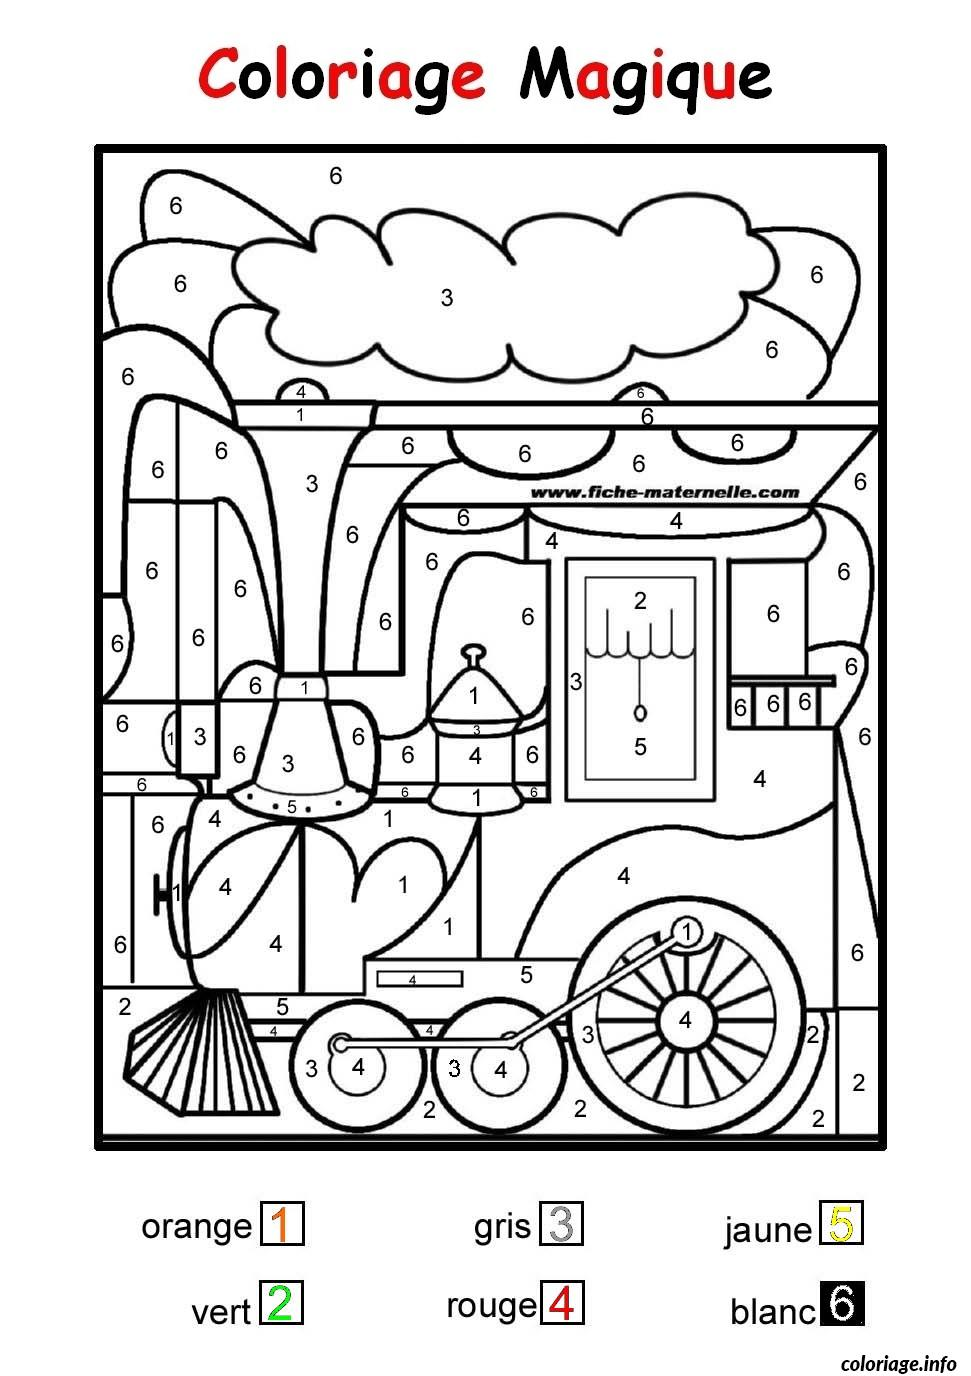 Coloriage Magique Train Facile Maternelle Dessin